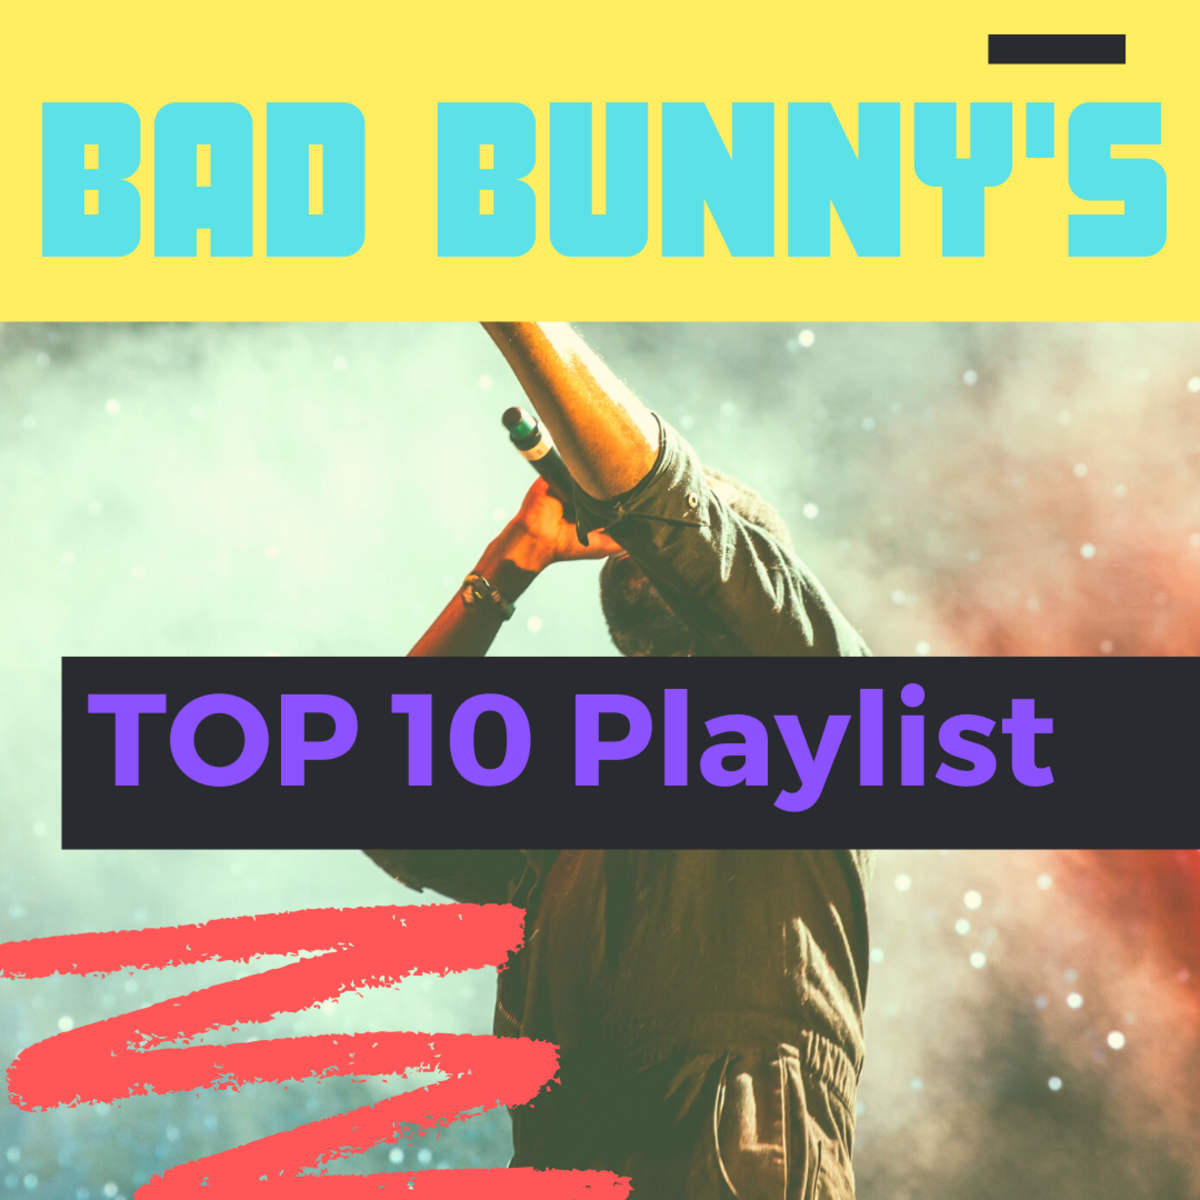 Bad Bunny's Top 10 Playlist